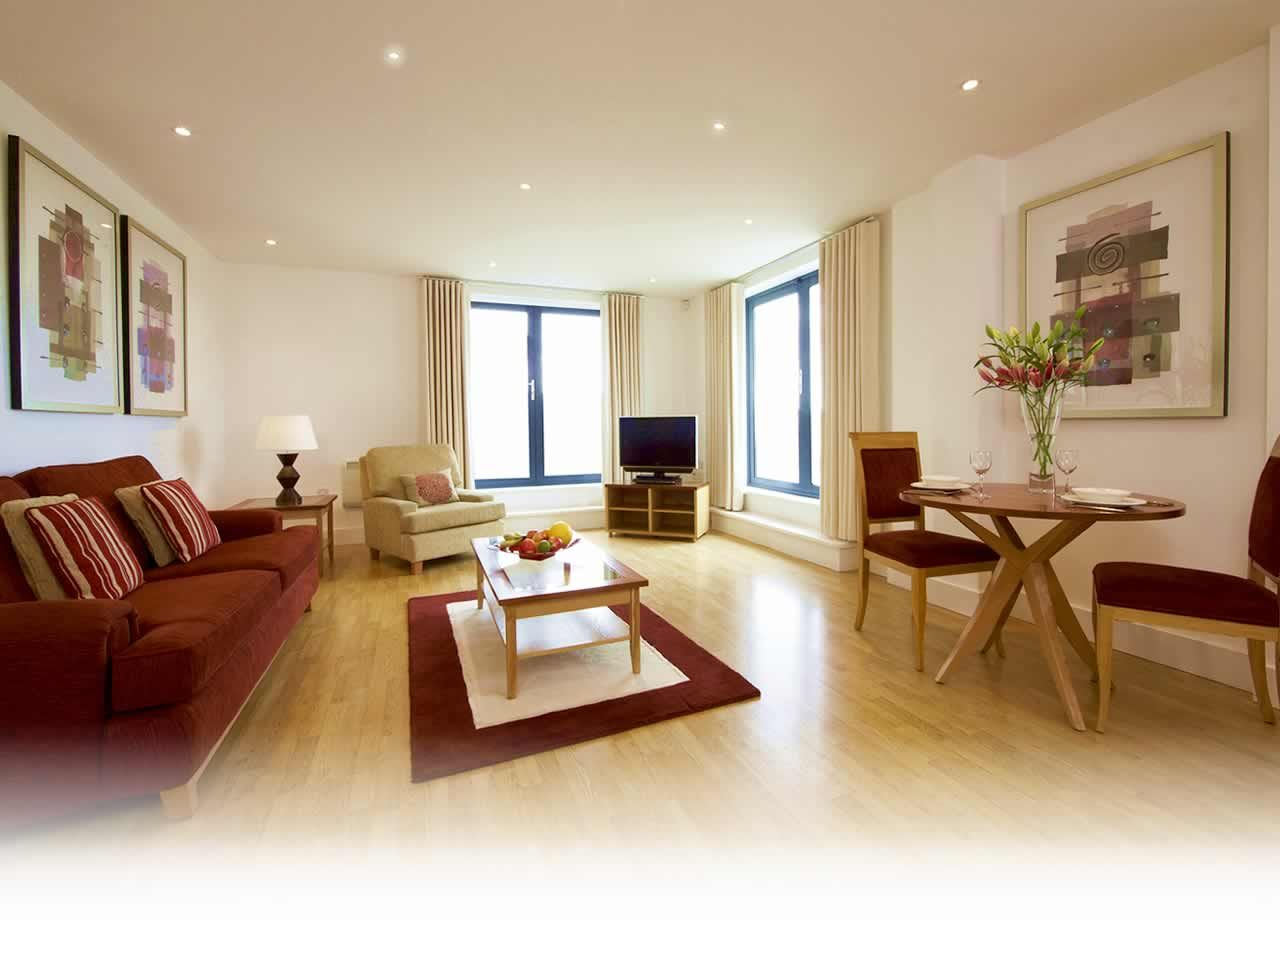 Serviced Apartments London, sin aparthotel en Londres